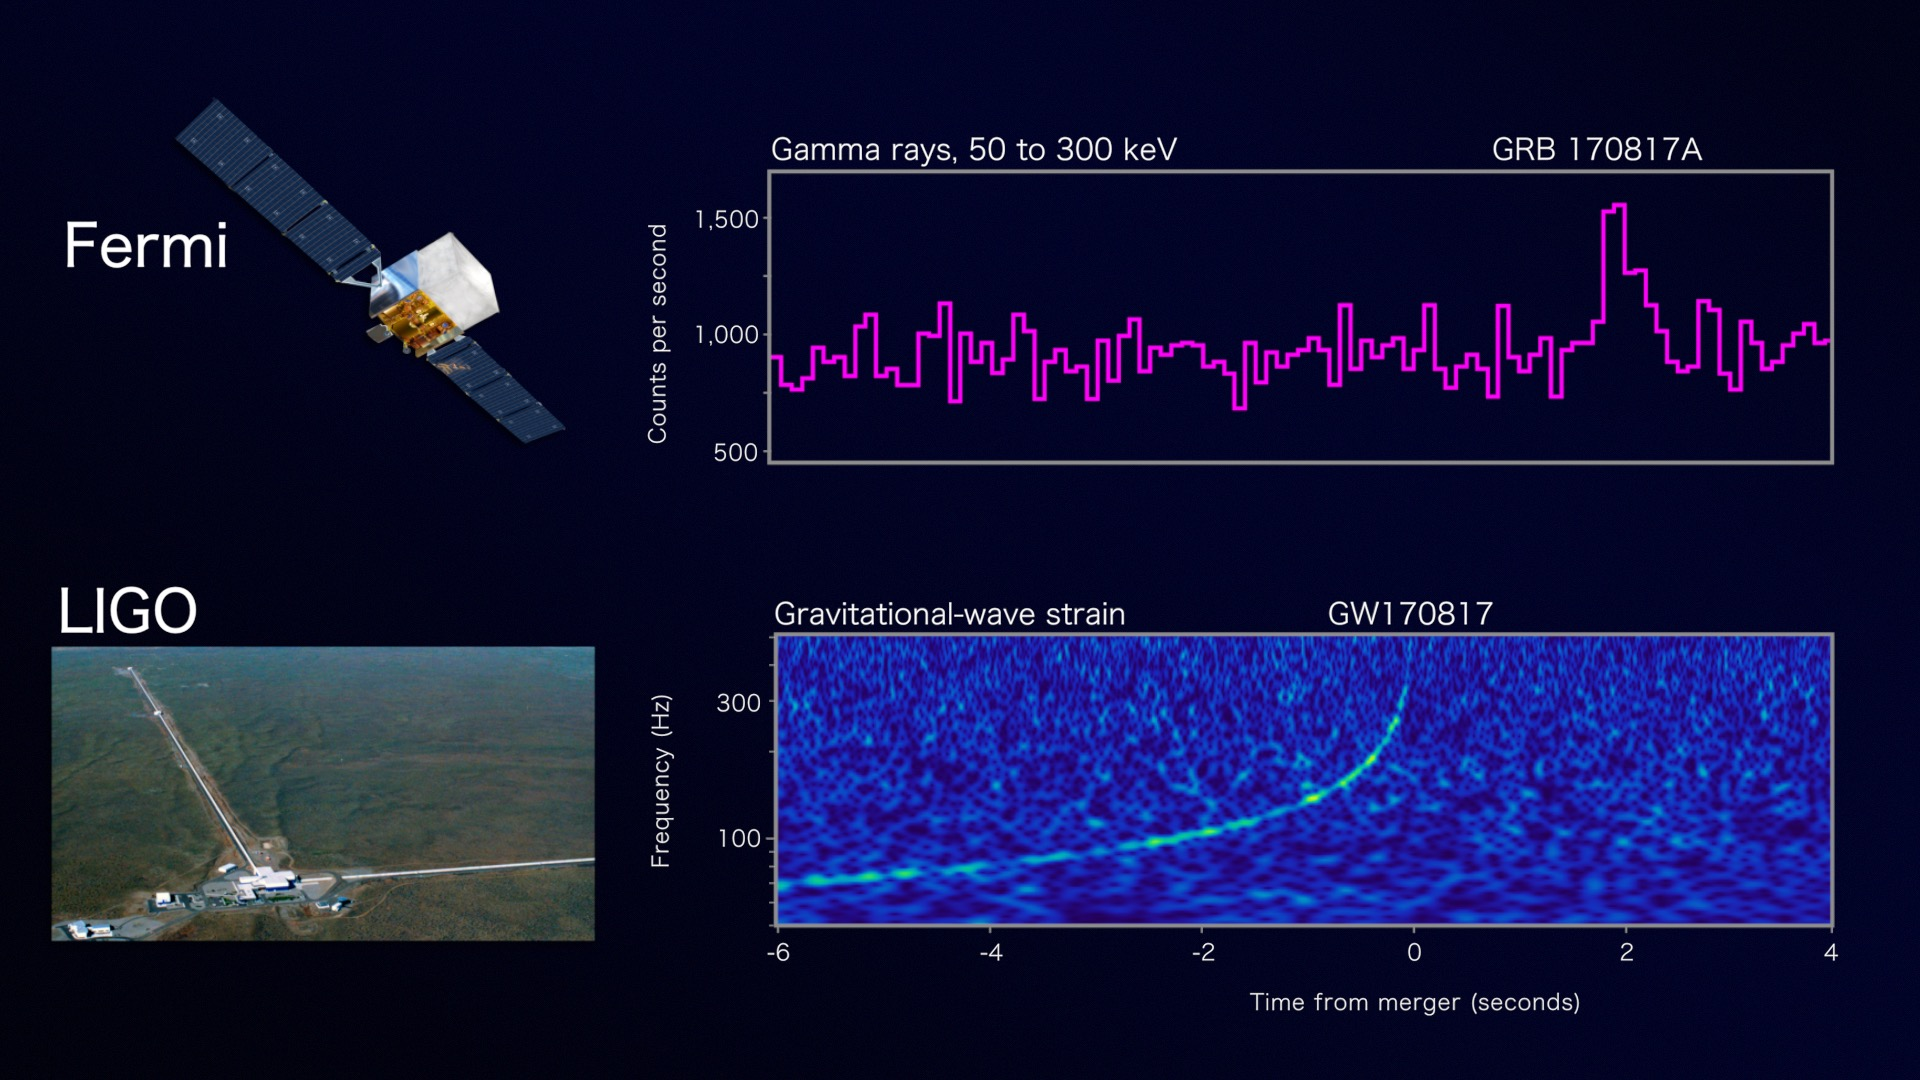 Listen to the gravitational wave detected by LIGO, followed by a ding when the gamma-ray burst was observed by Fermi.